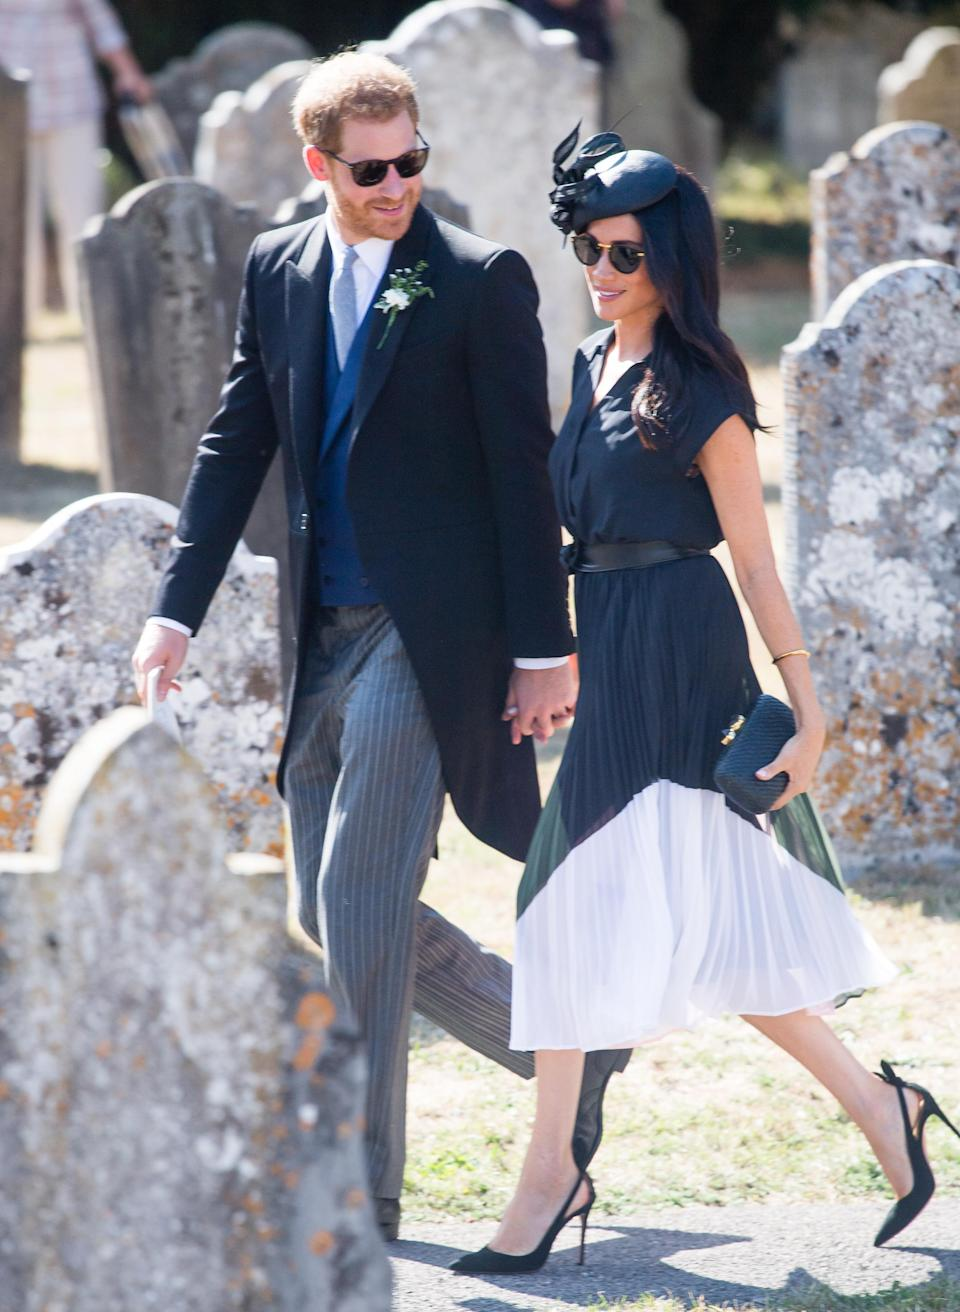 On August 4, the Duke and Duchess of Sussex attended Charlie Van Straubenzee and Daisy Jenk's wedding. Source: Getty